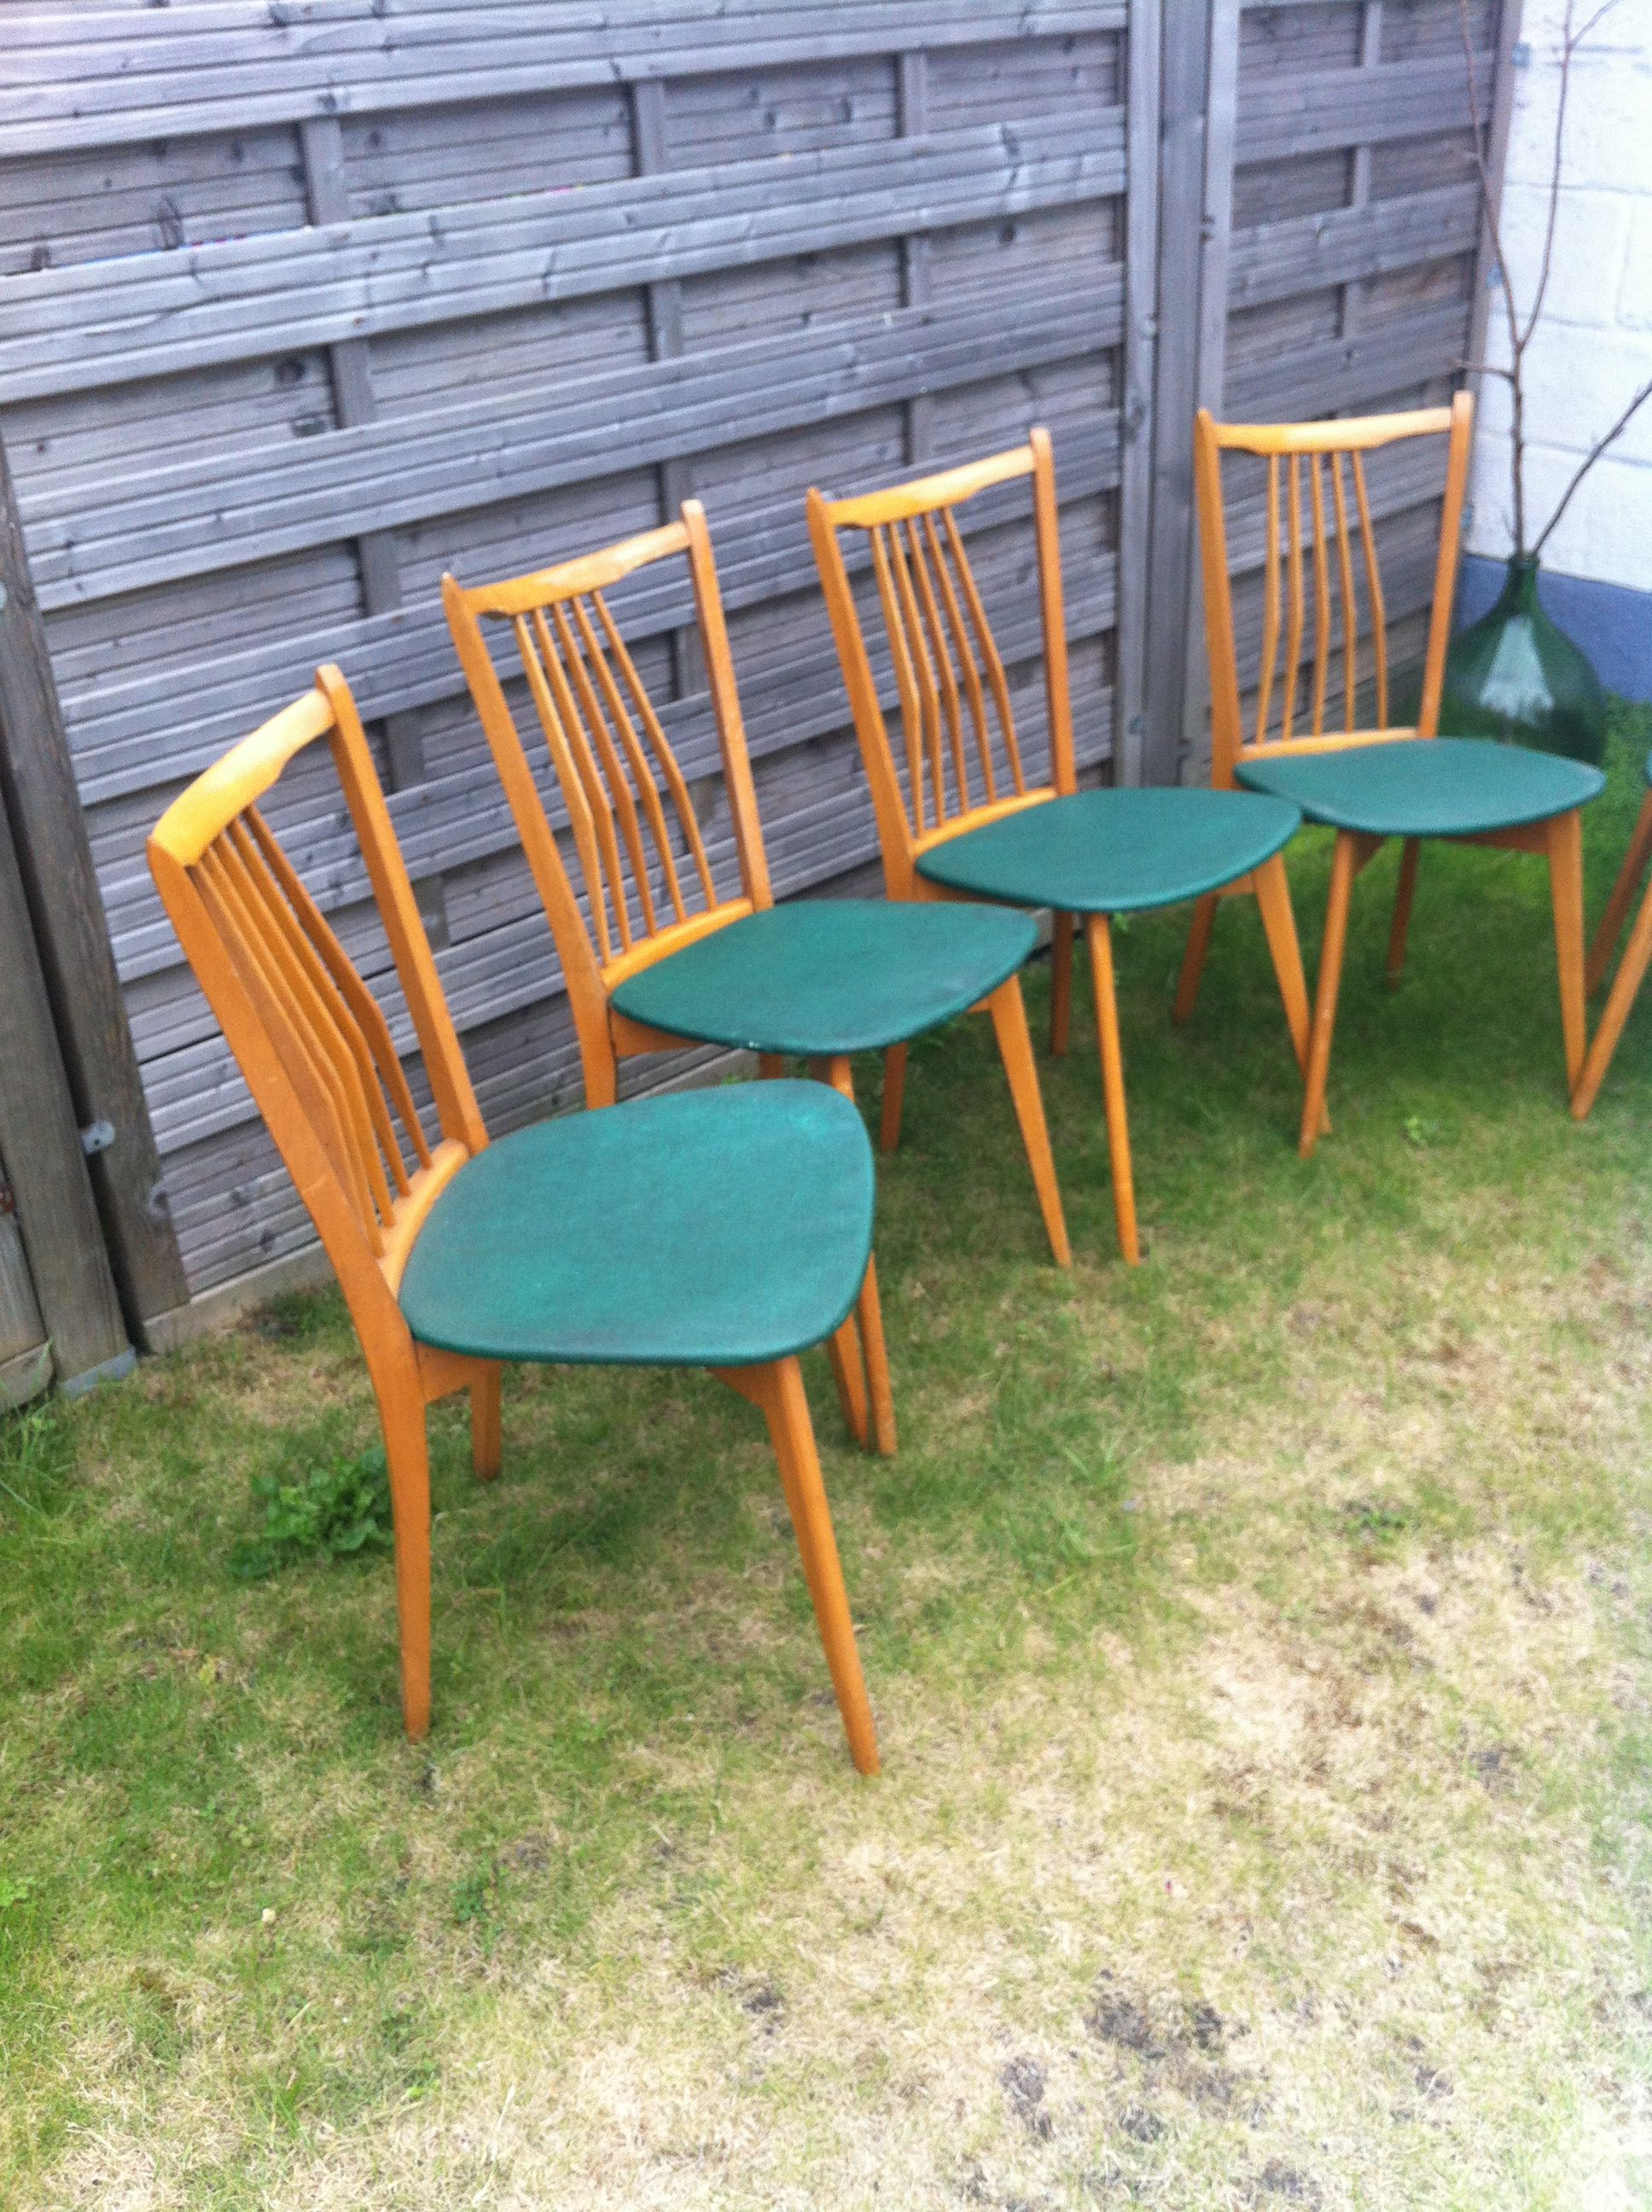 Chaises Scandinave Verte Tontonpol Decoration Et Ameublement Chaise Scandinave Ameublement